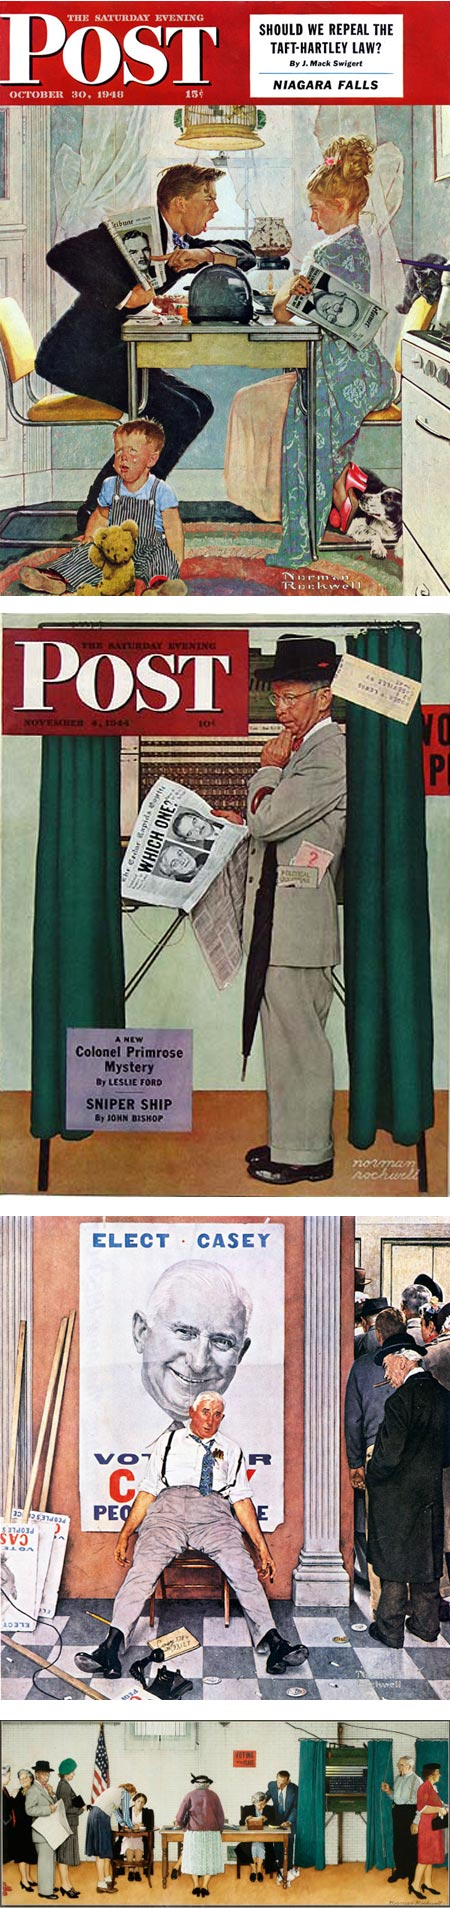 Voting illustrations - Norman Rockwell